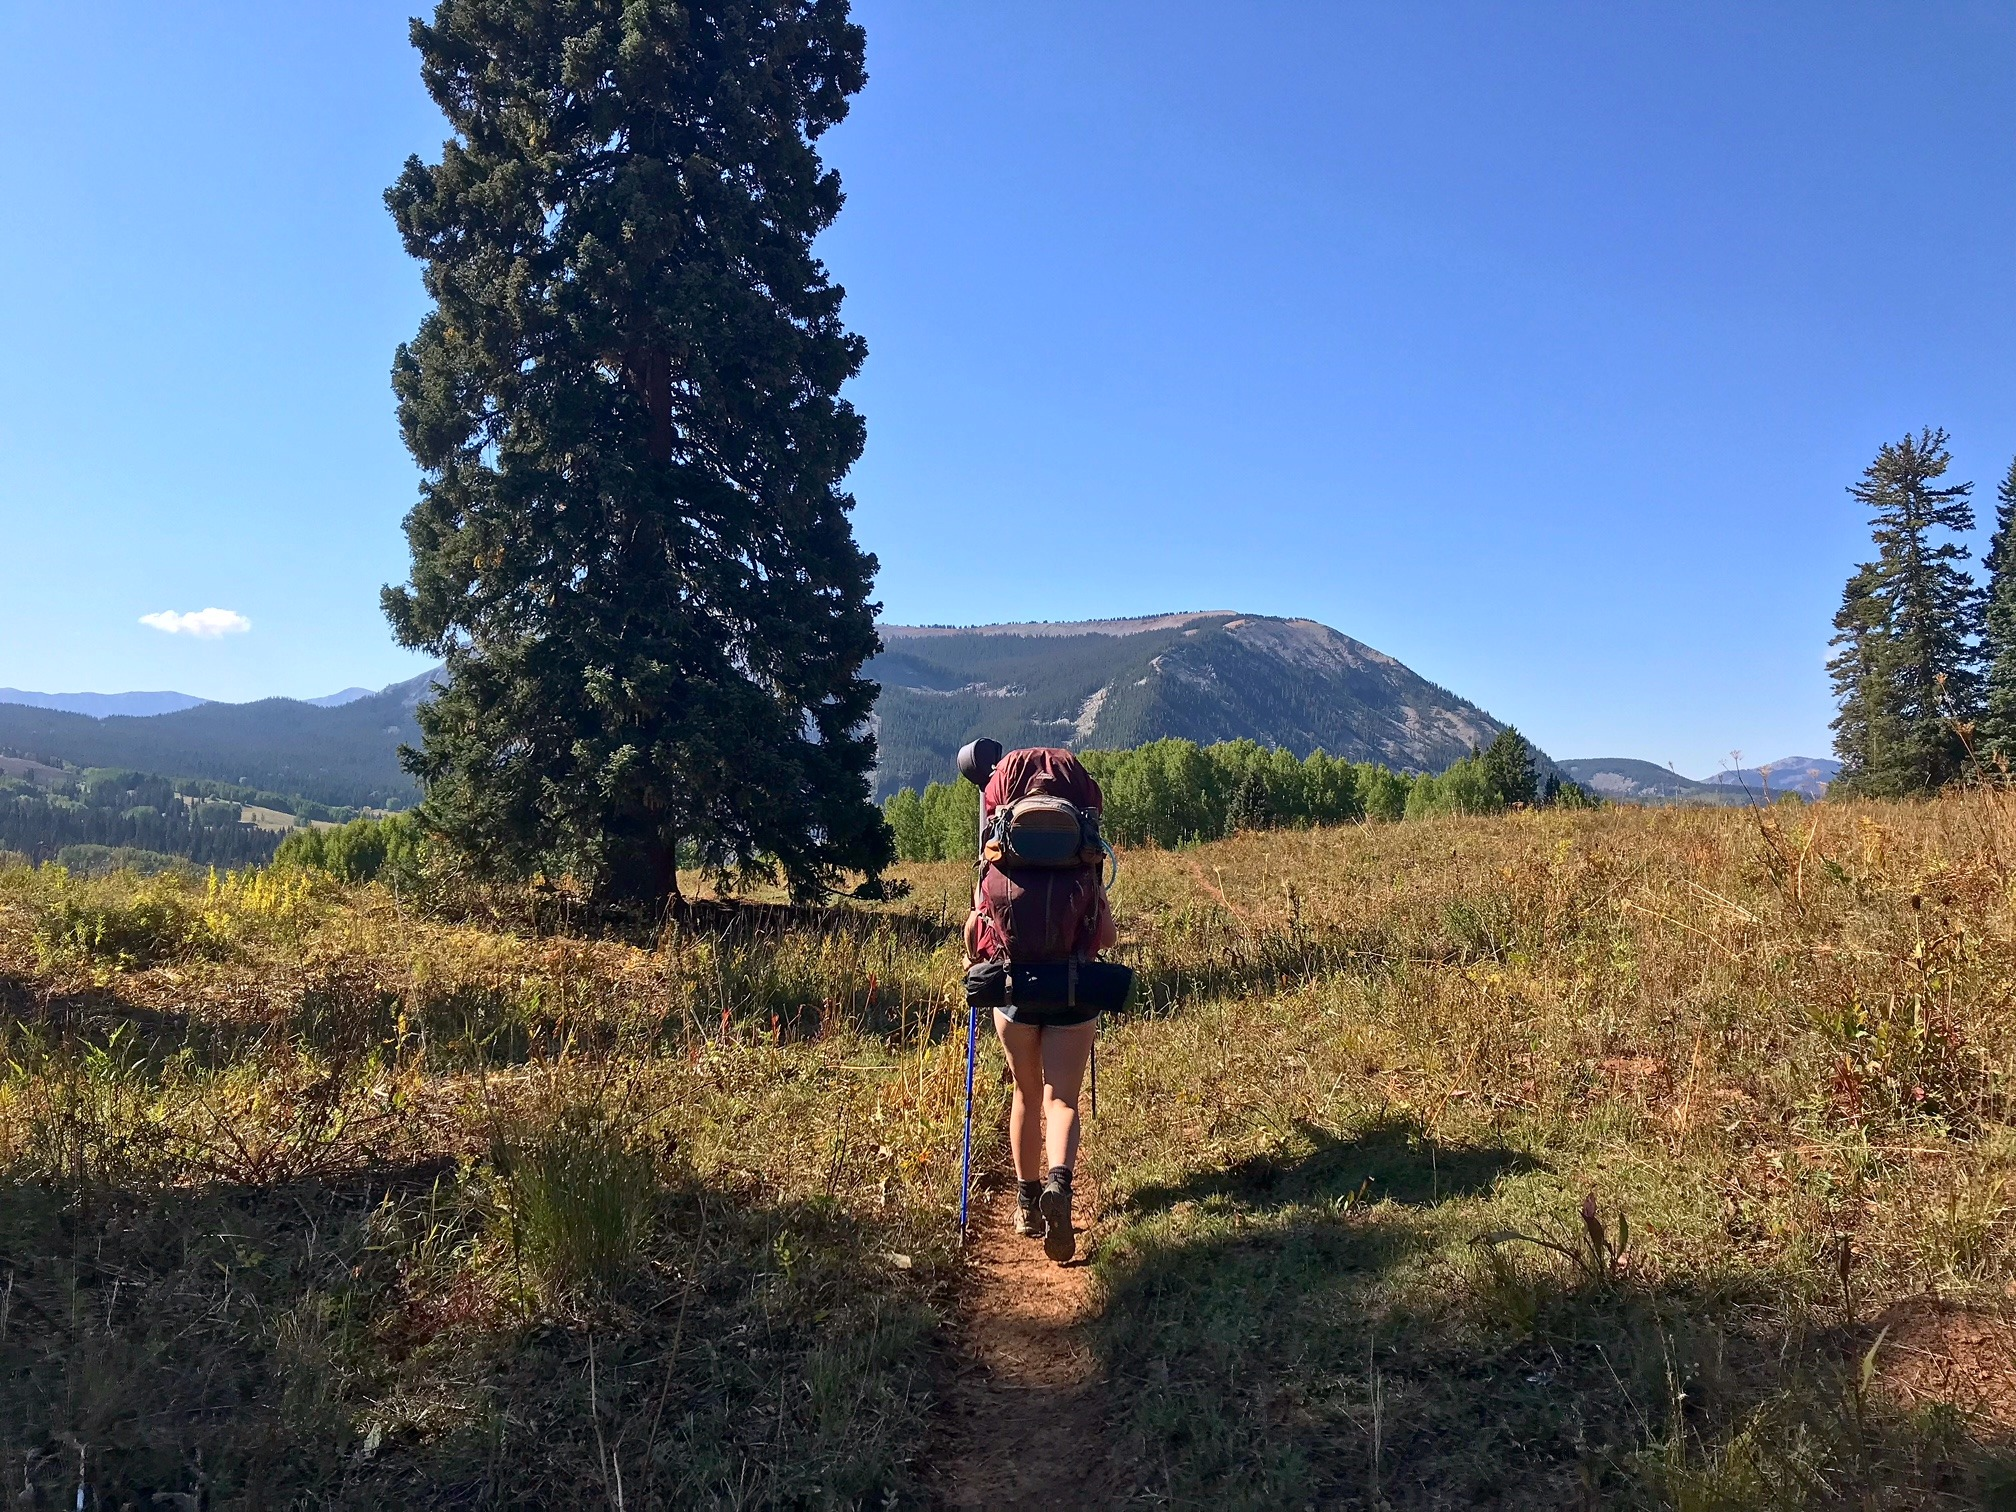 A woman hikes along a trail with a mountain in the background.